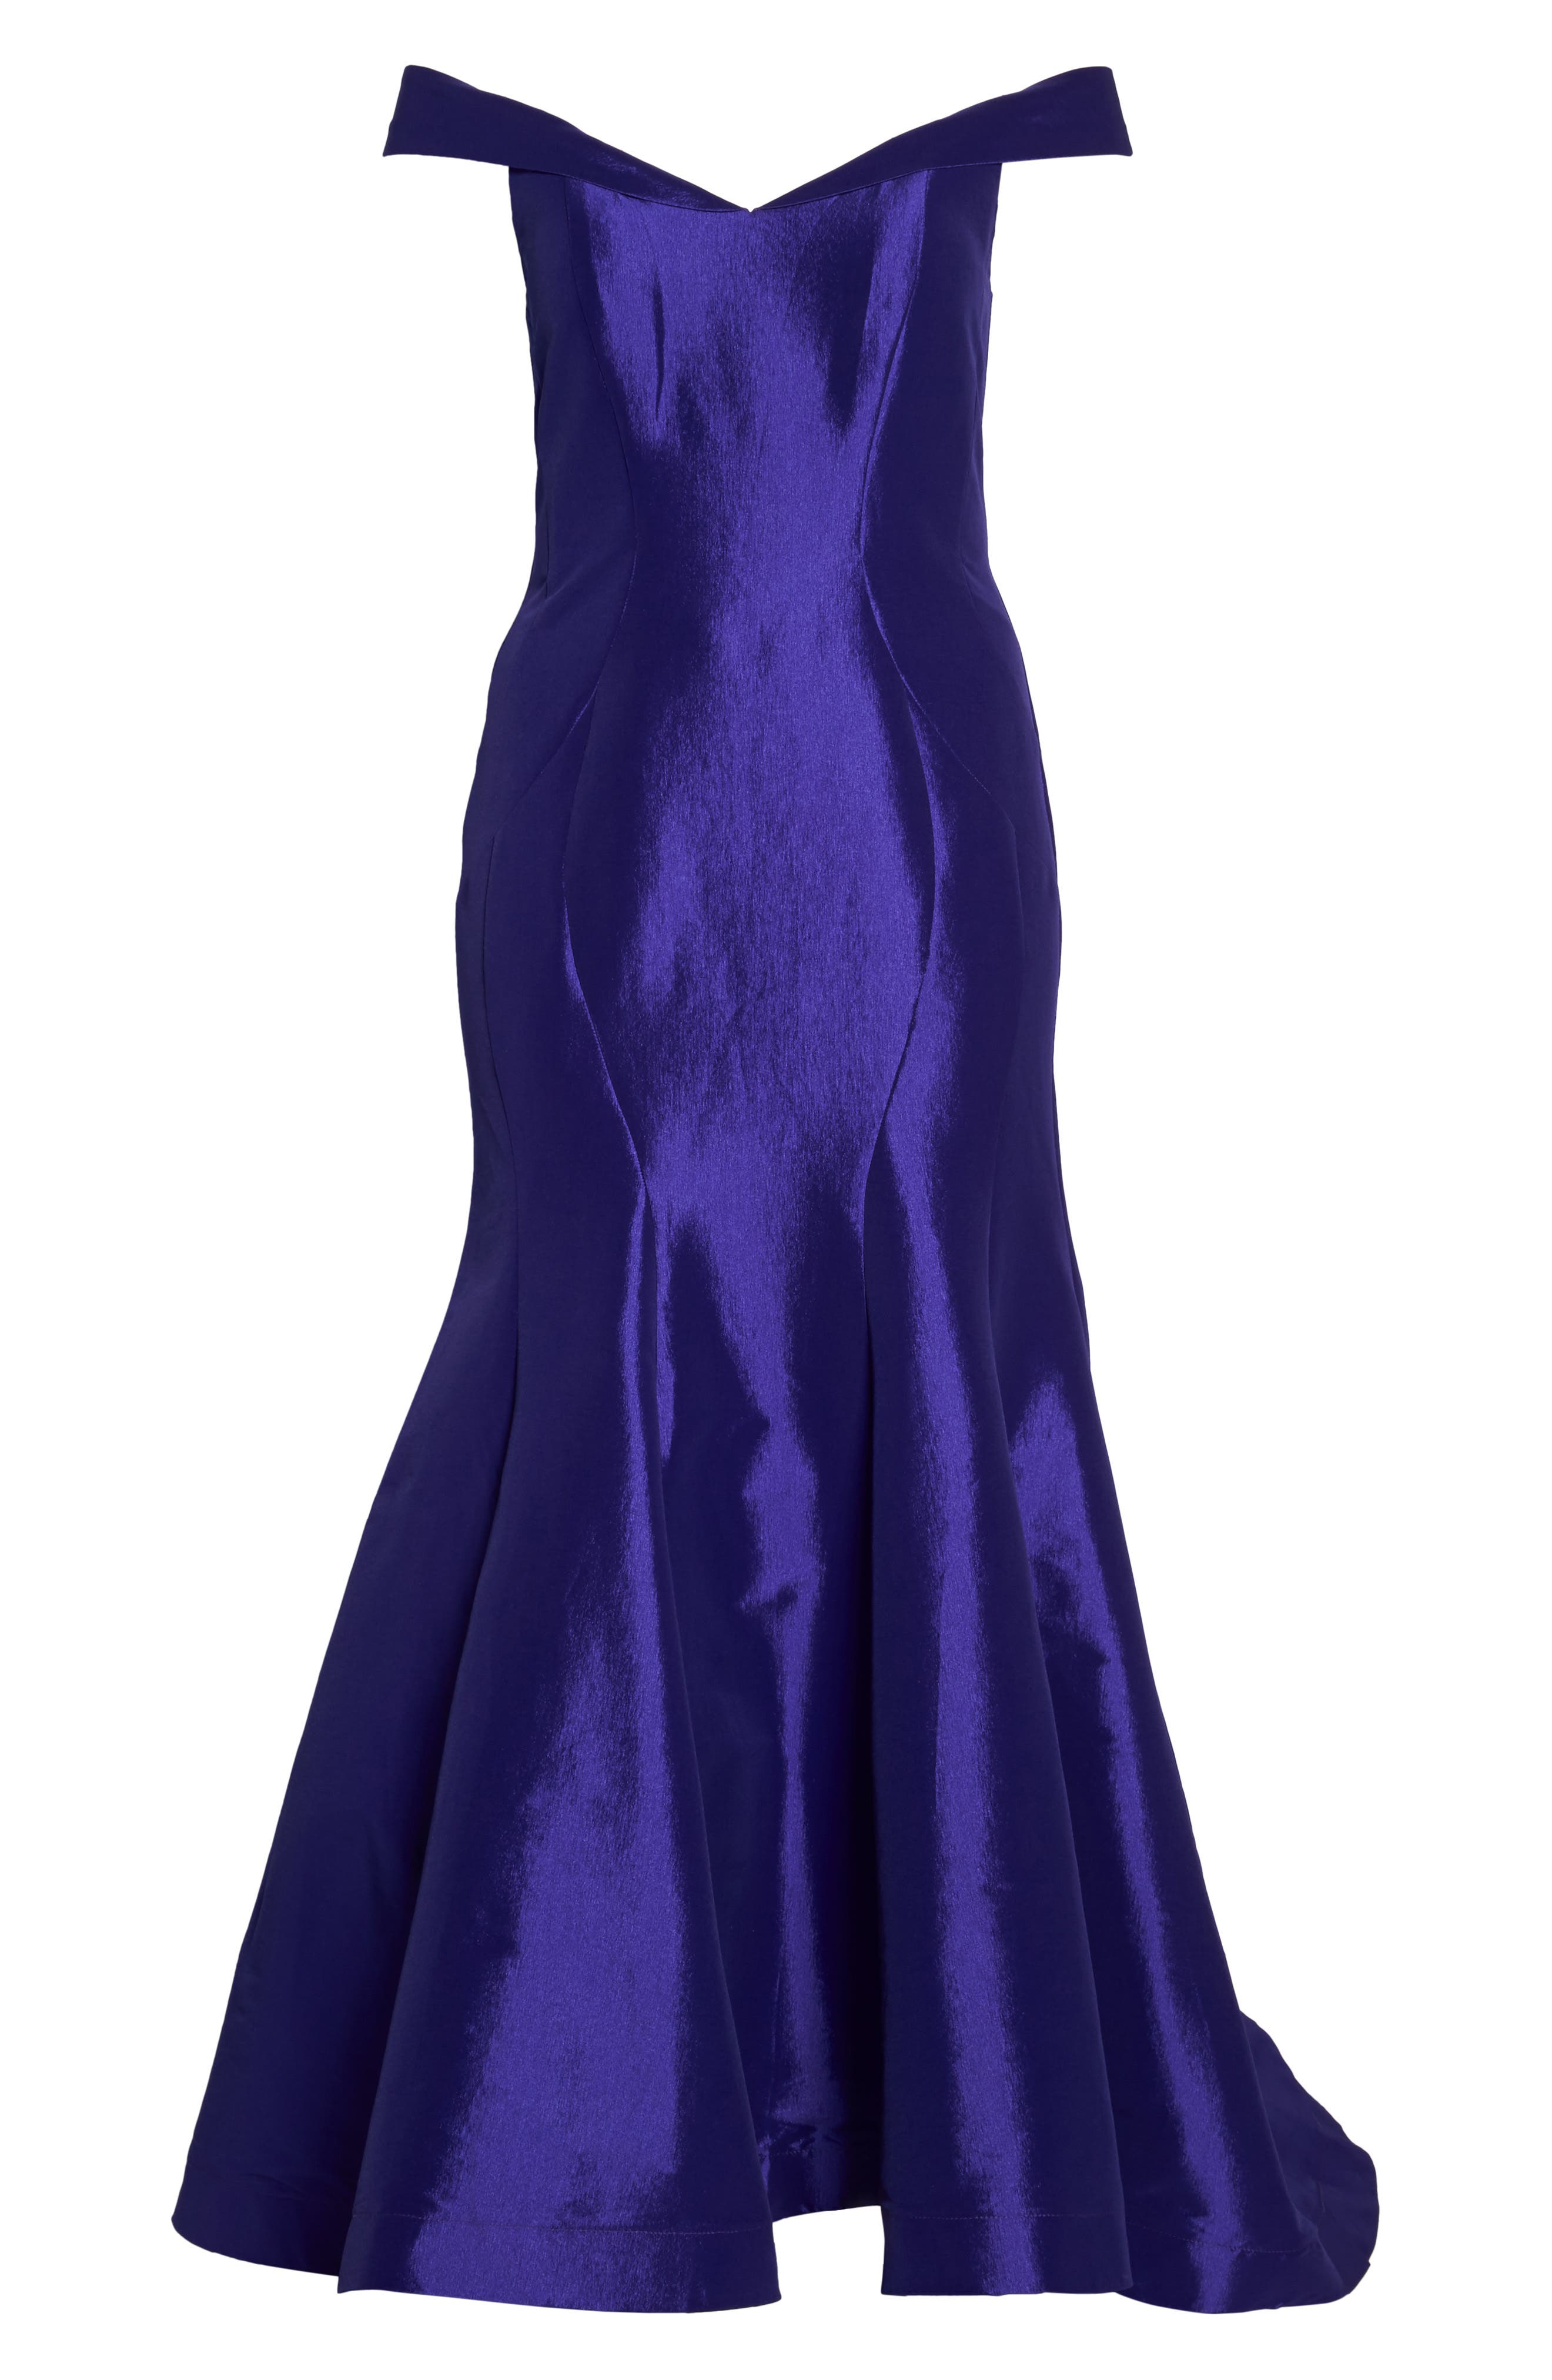 Off the Shoulder Mermaid Gown,                             Alternate thumbnail 6, color,                             Royal/ Purple